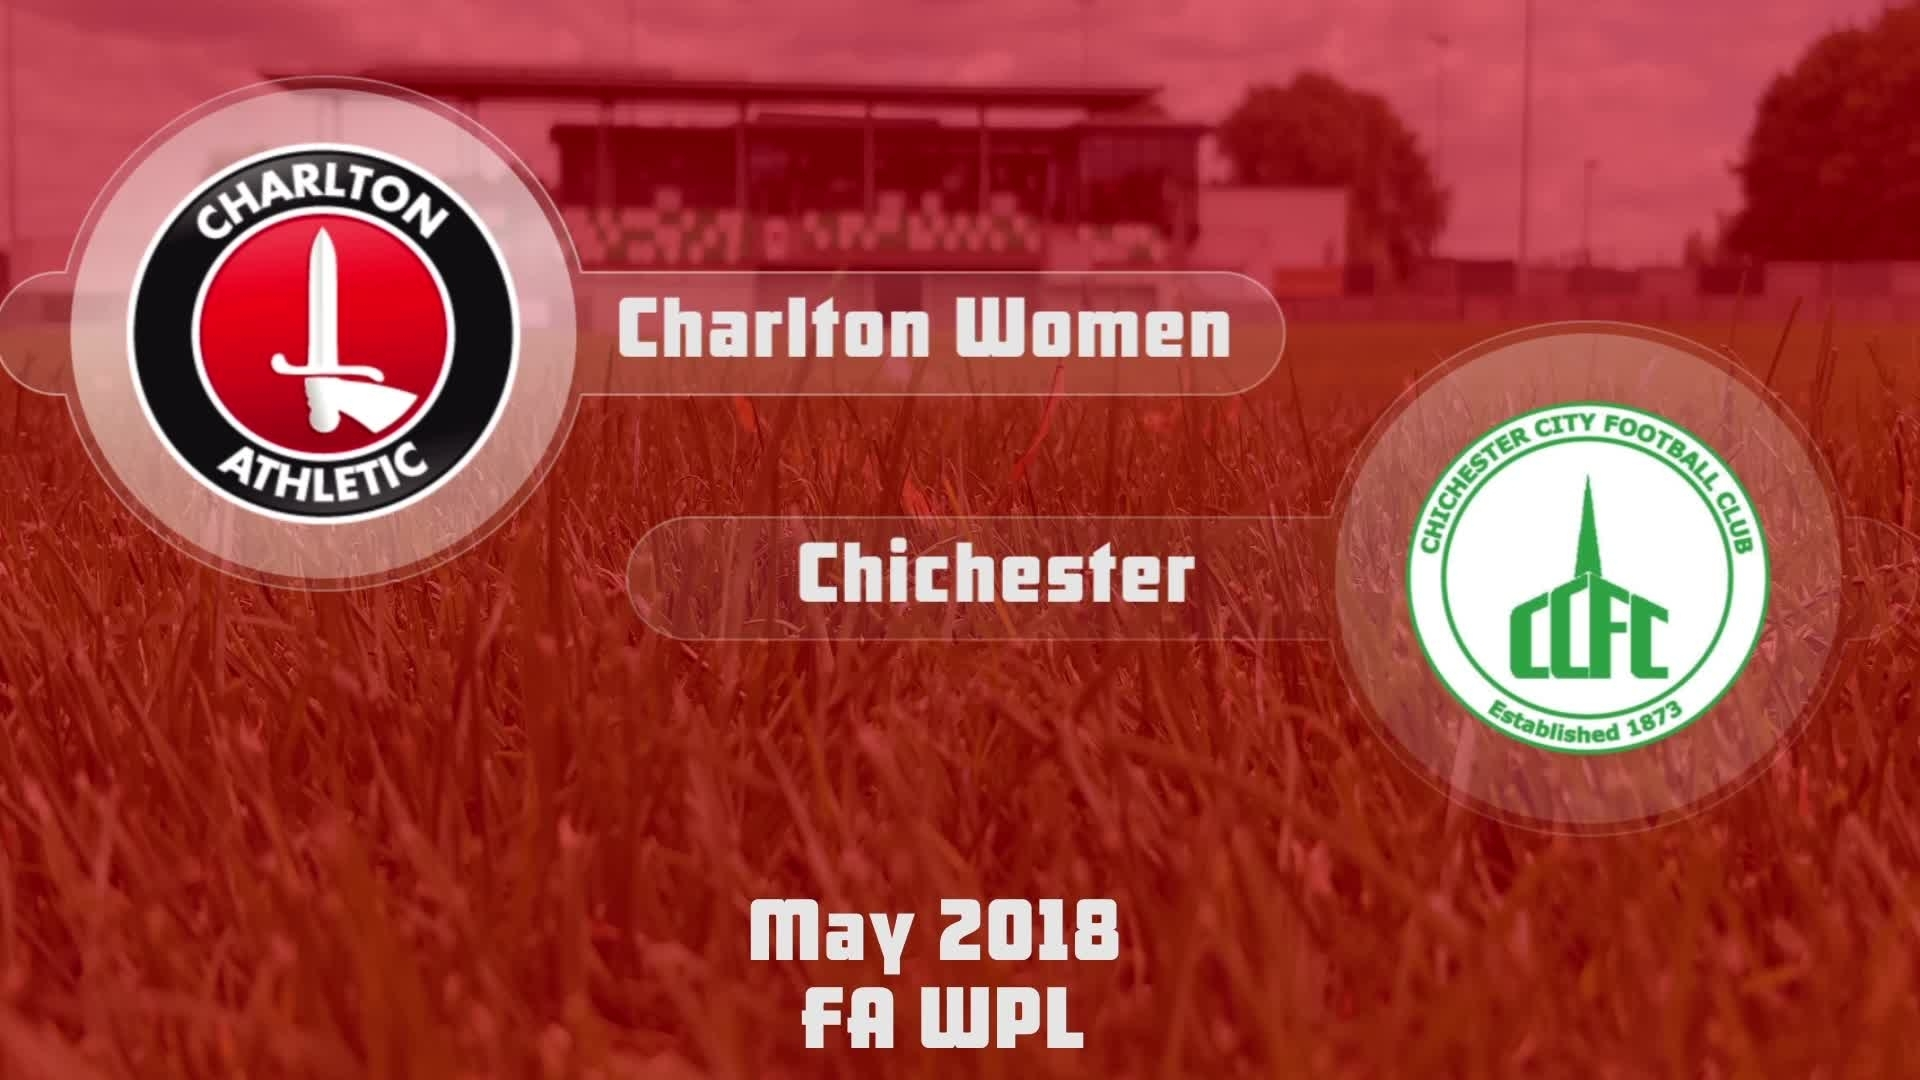 WOMEN'S HIGHLIGHTS | Charlton 4 Chichester 1 (May 2018)